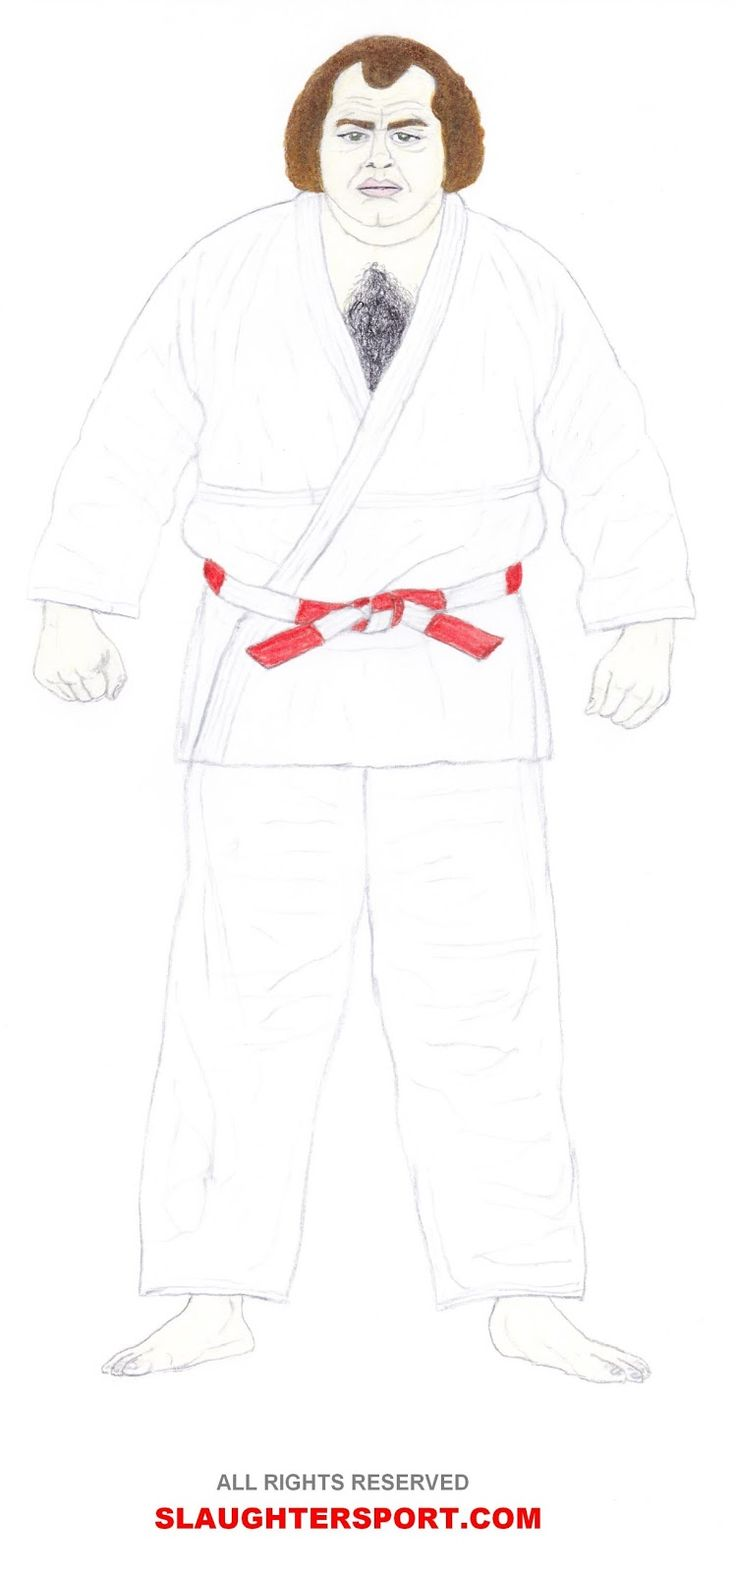 STRENGTH FIGHTER™: Judo Olympic Gold medalist